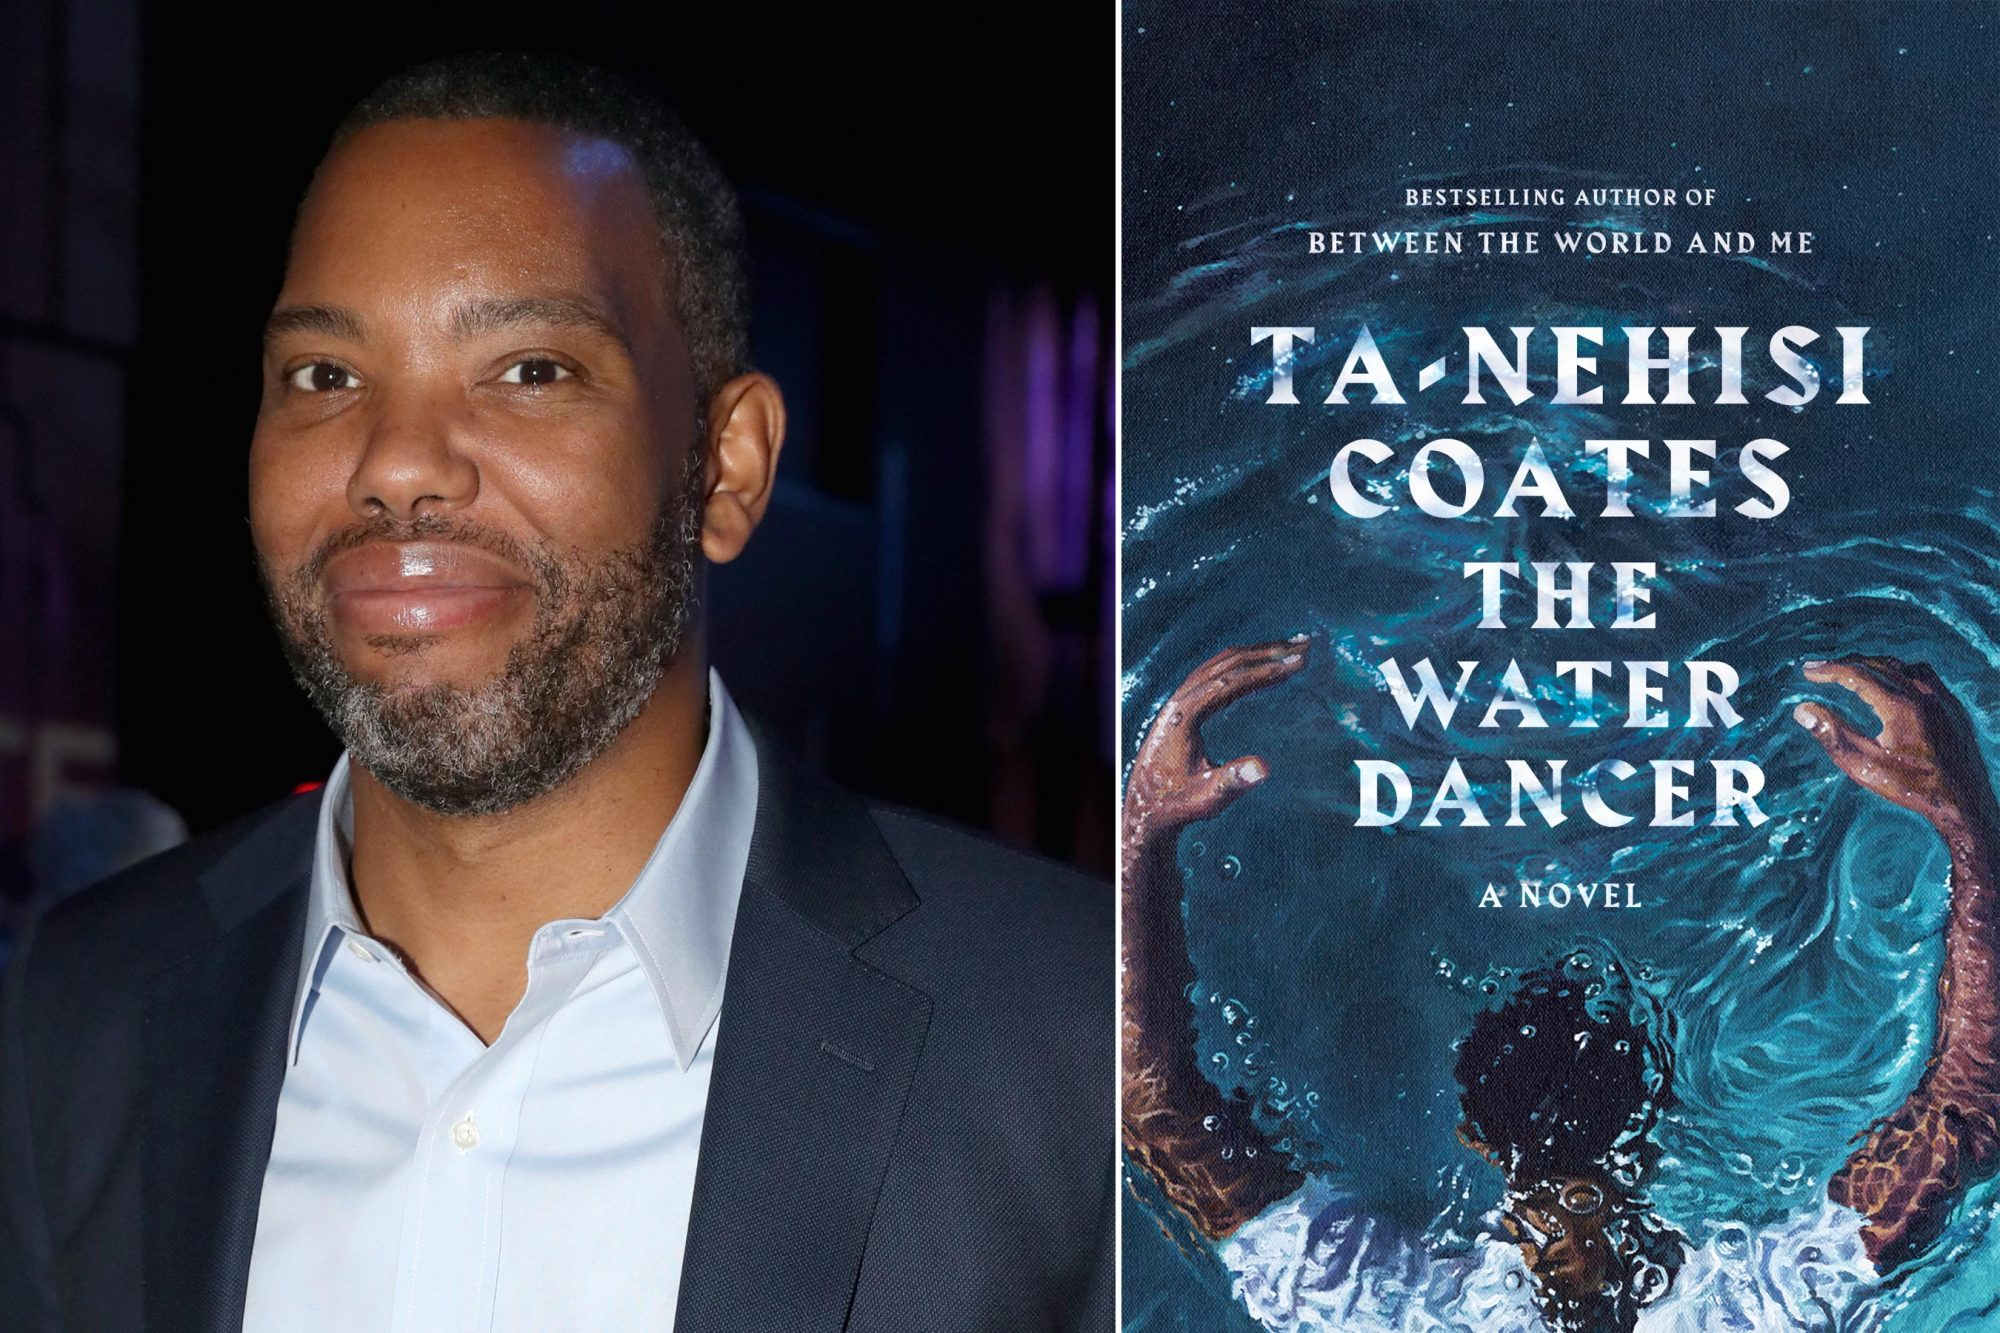 The Water Dancer by Ta-Nehisi Coates